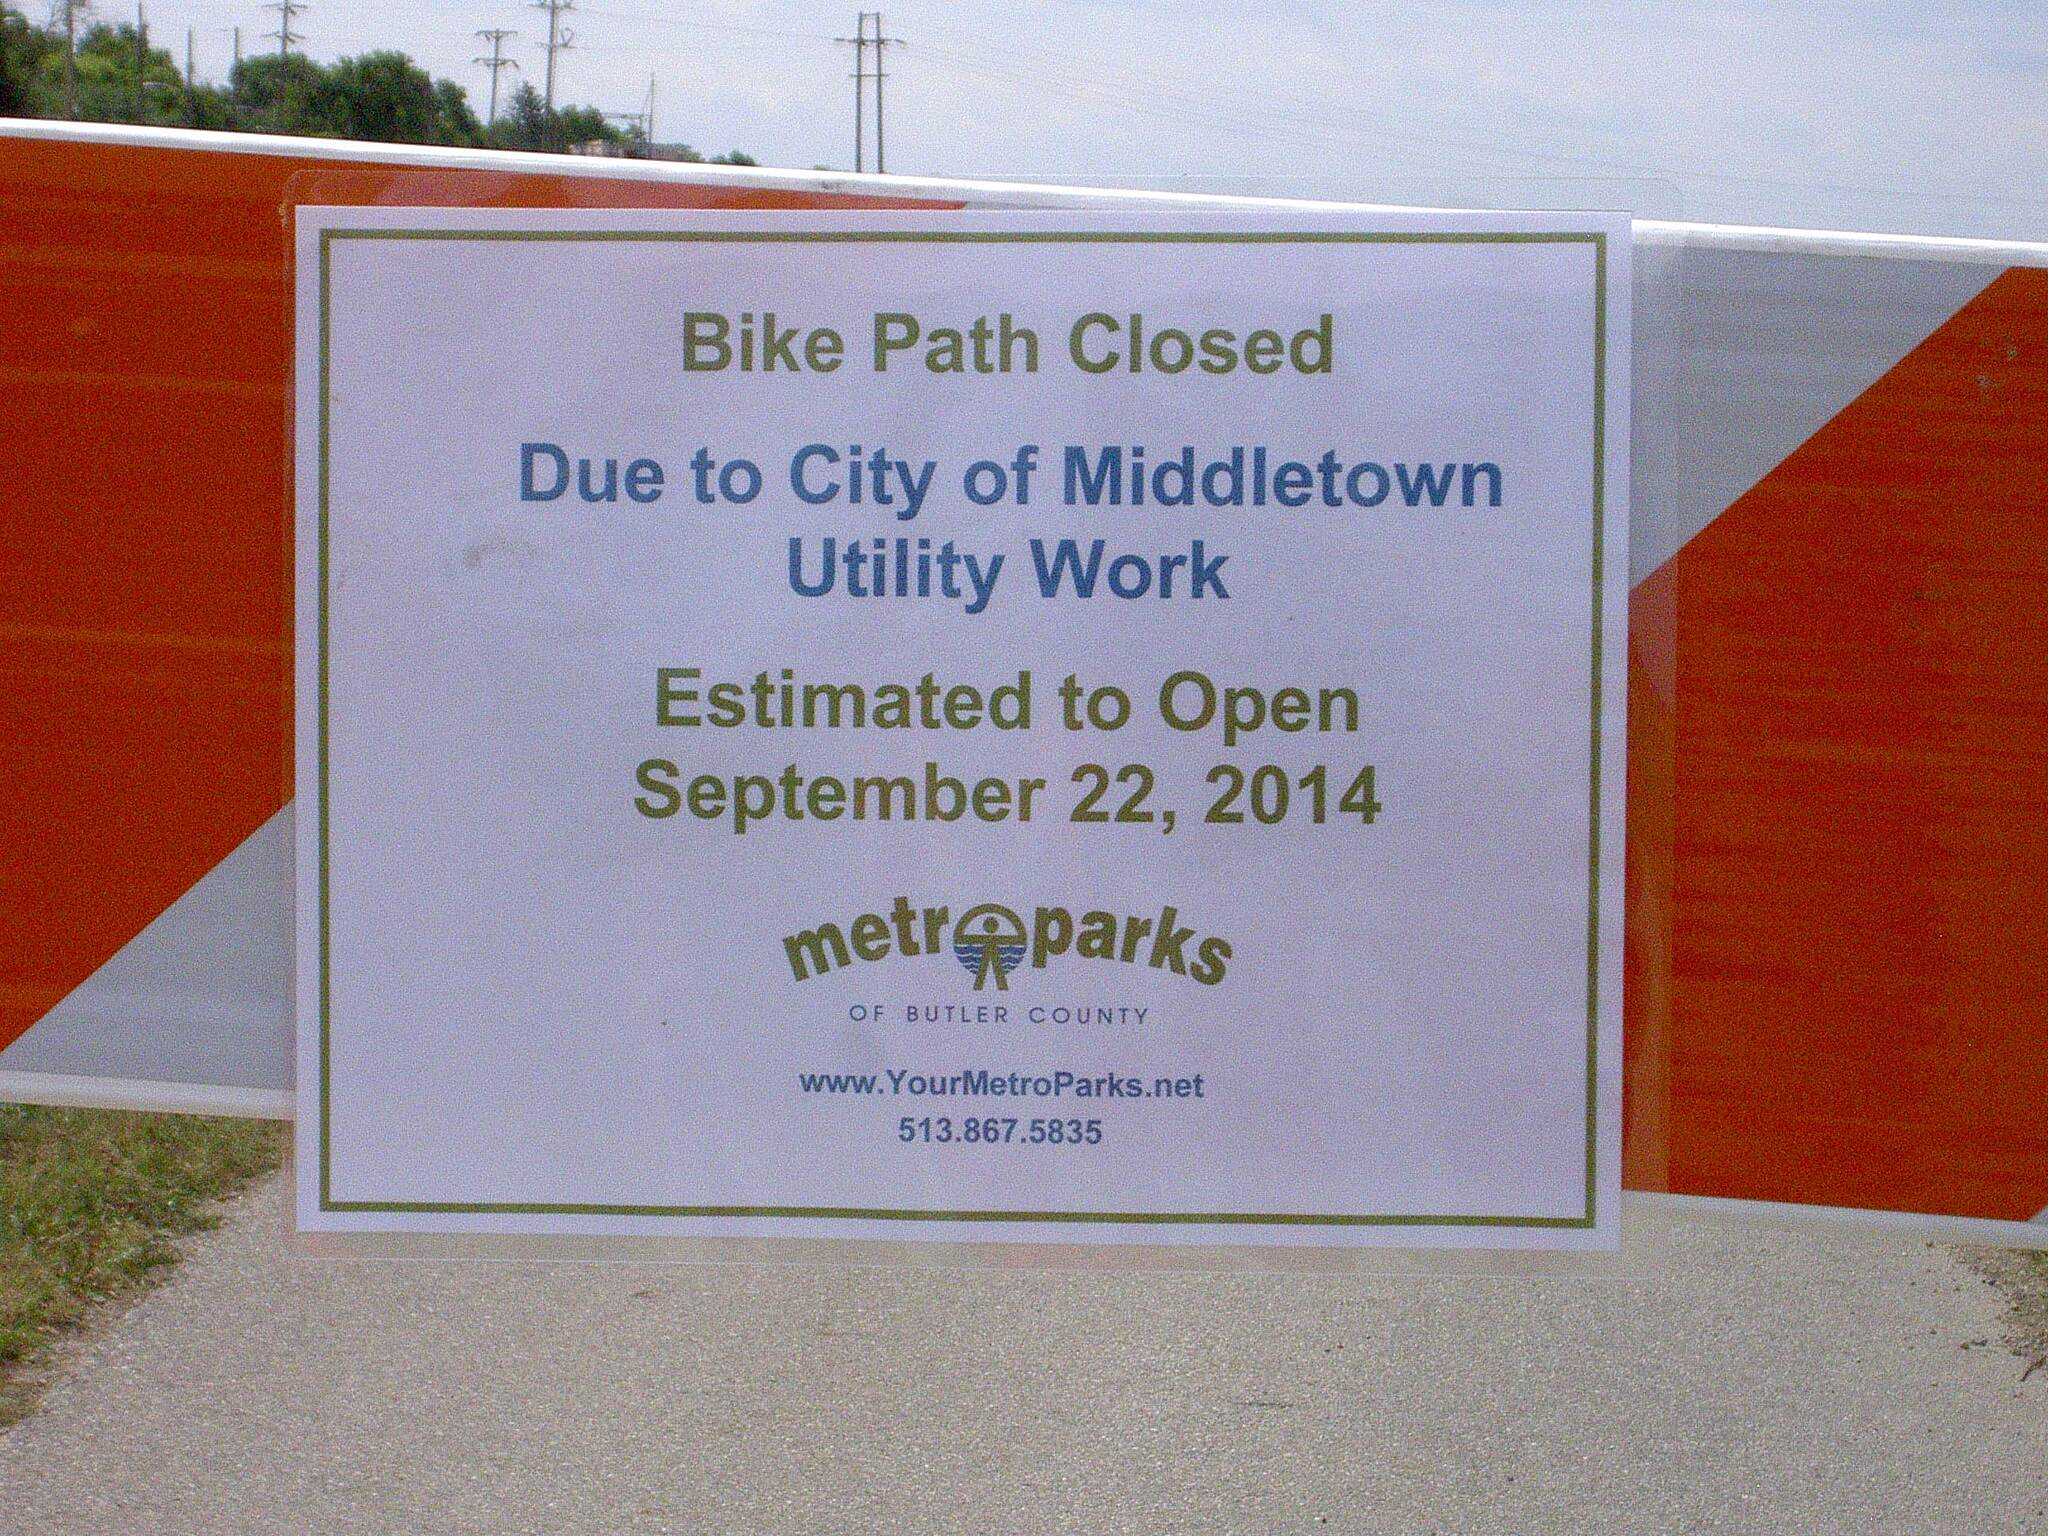 Great Miami River Trail Short Middletown section close Short Middletown section closed 08-14-2014